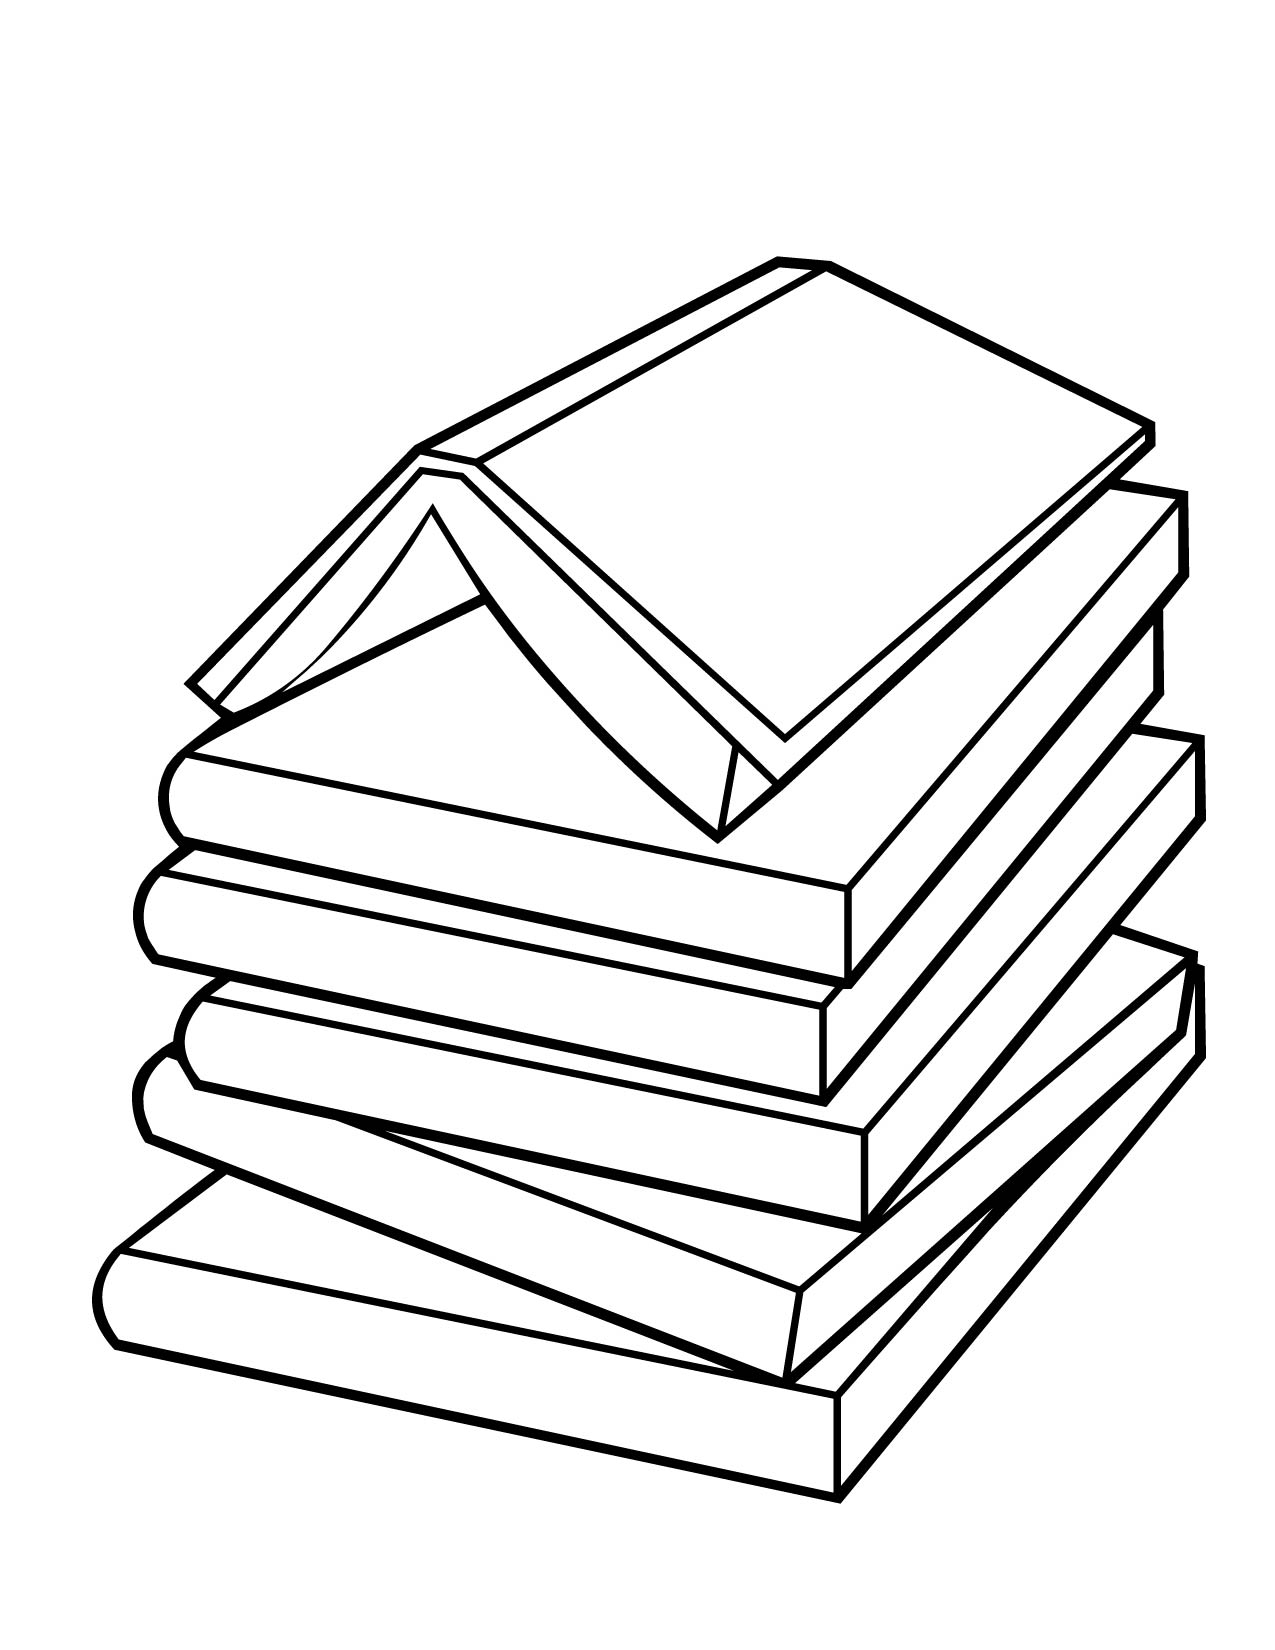 Childrens Books Coloring Pages Colouring Pages 4 Free